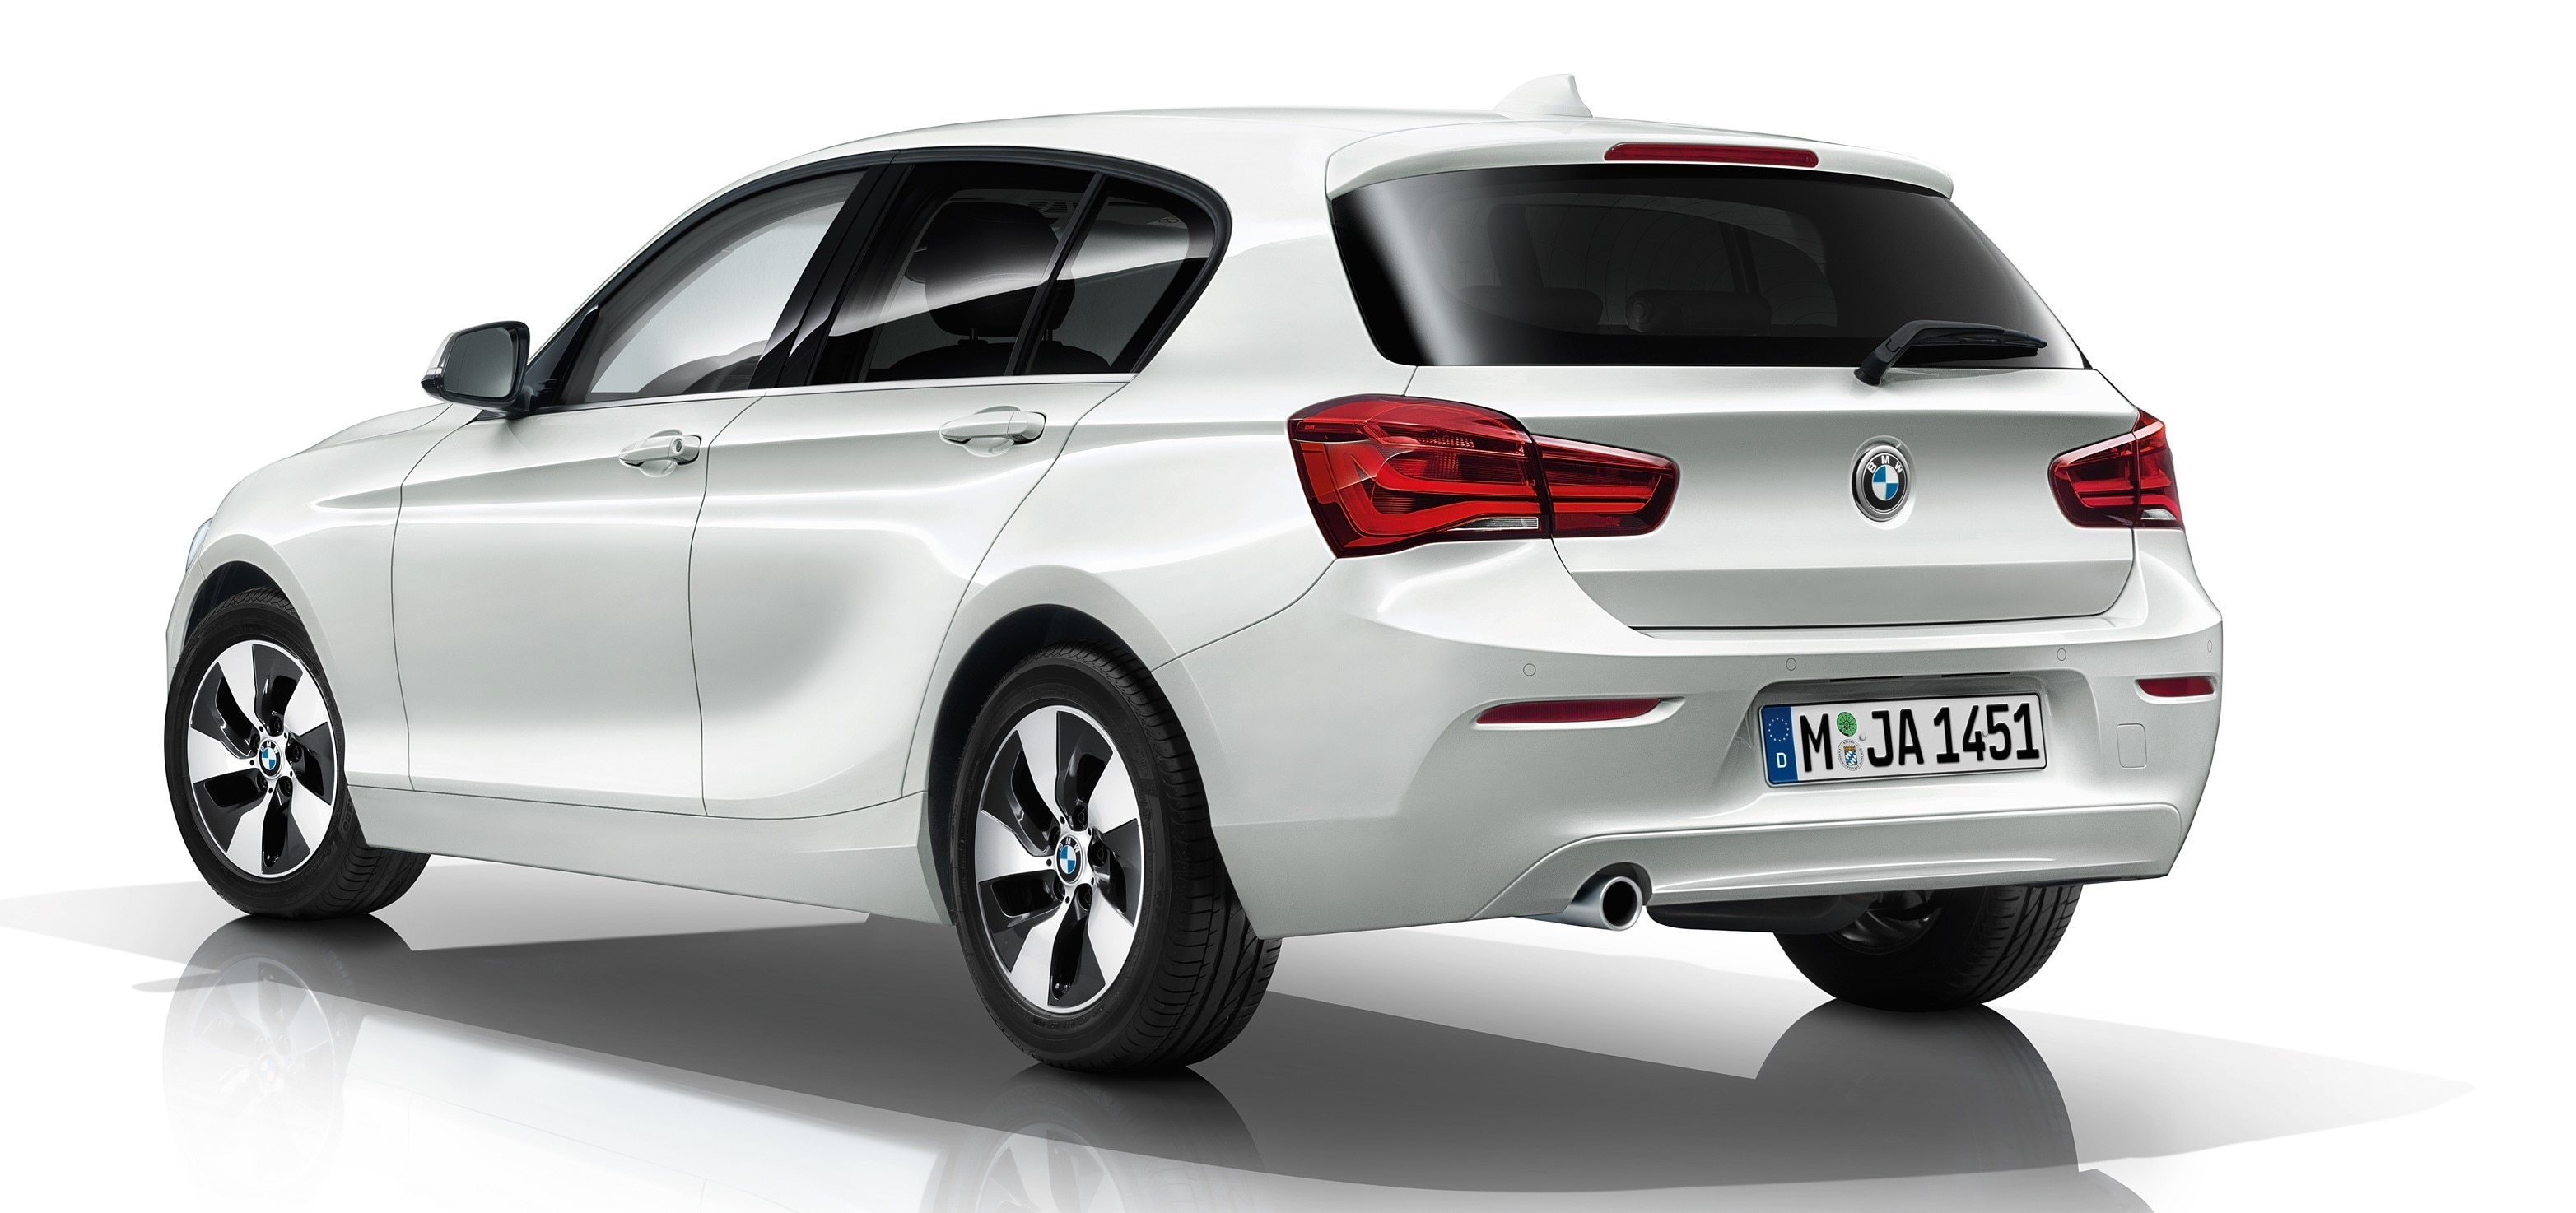 Rear-wheel drive has not damaged the BMW's credibility in this category. It  has also been said that the six-speed manual gearbox takes some getting  used to.